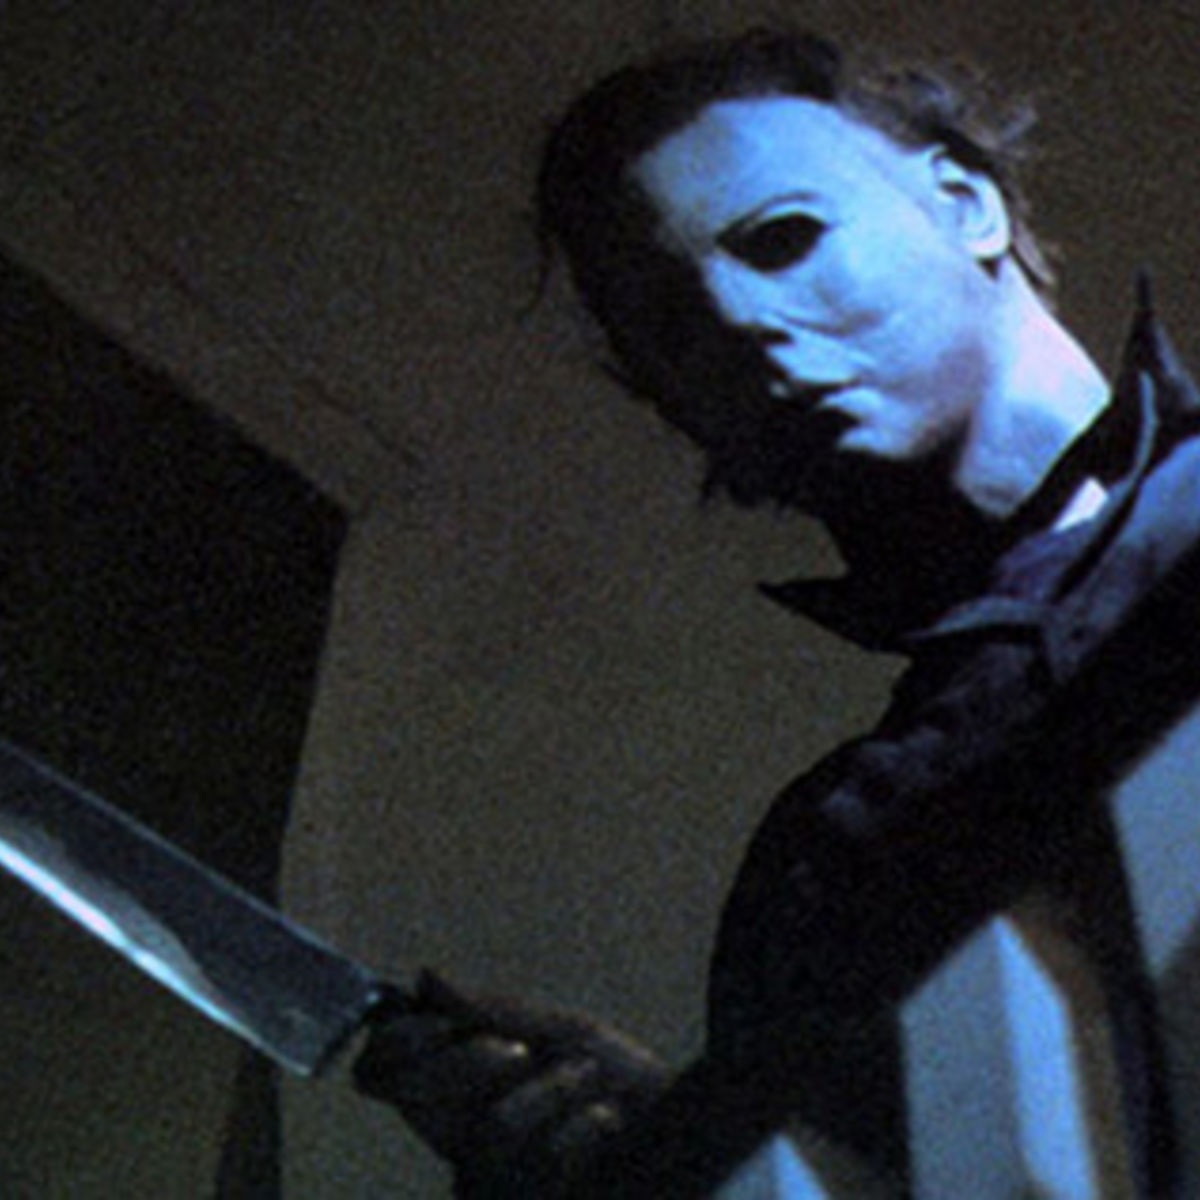 michael myers returns in first poster for new halloween movie as release date is announced